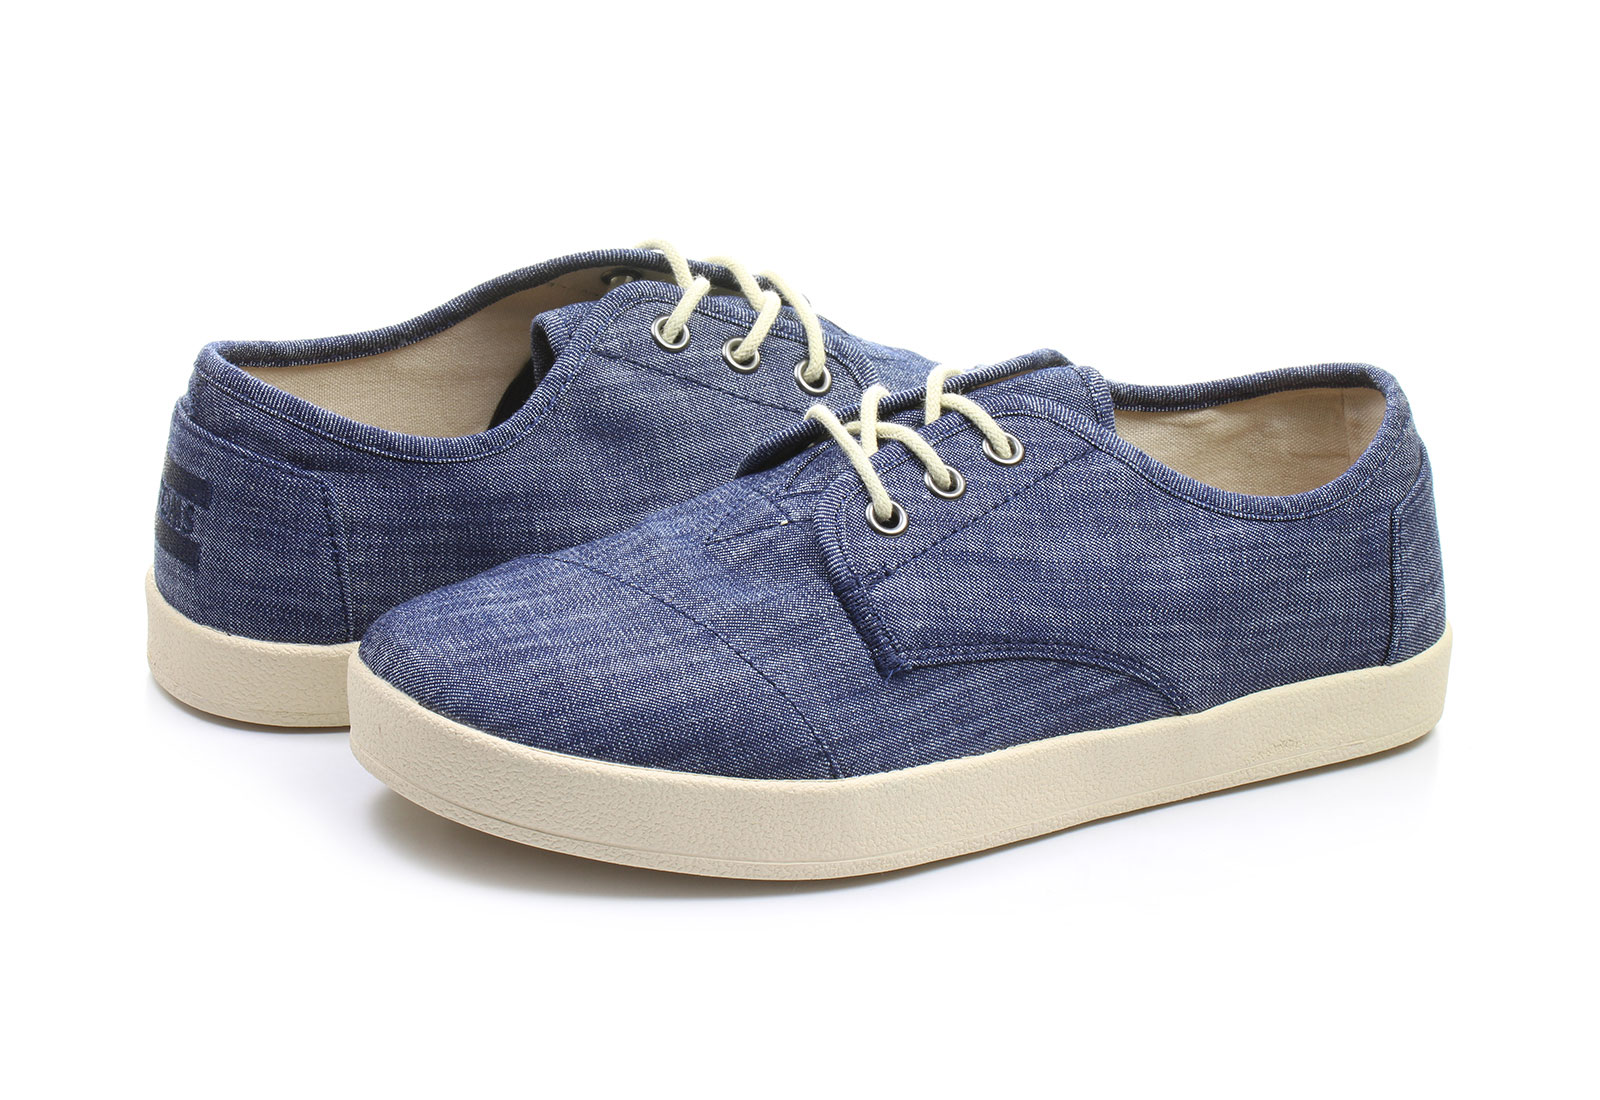 4787482c6c4 Toms Shoes - Paseo - 10008090-blu - Online shop for sneakers ...